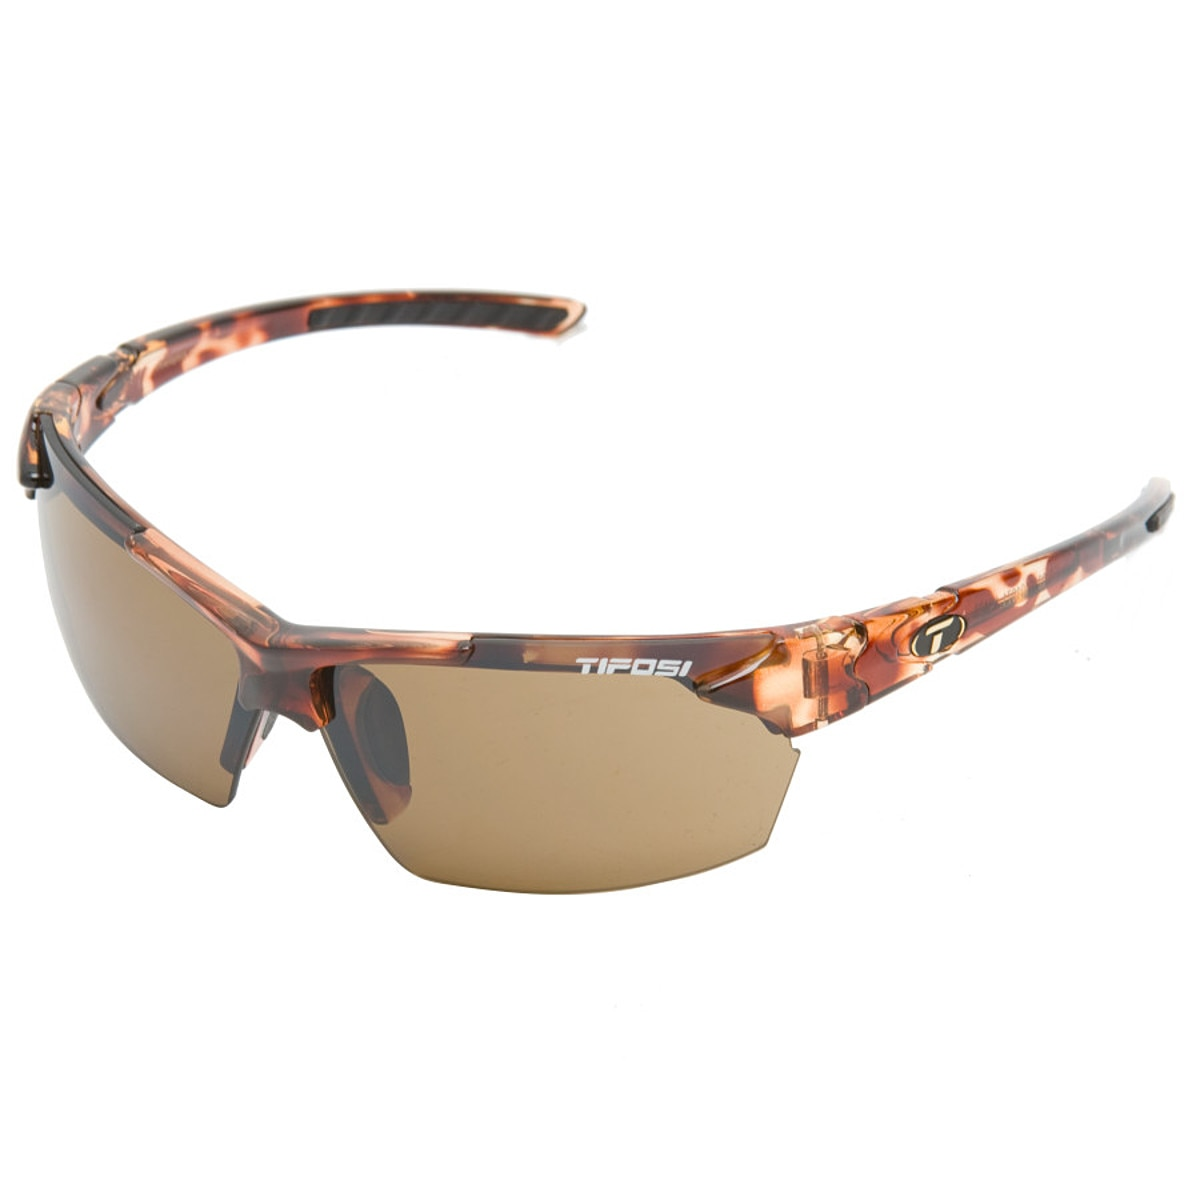 Tifosi Optics Jet Sunglasses Mens